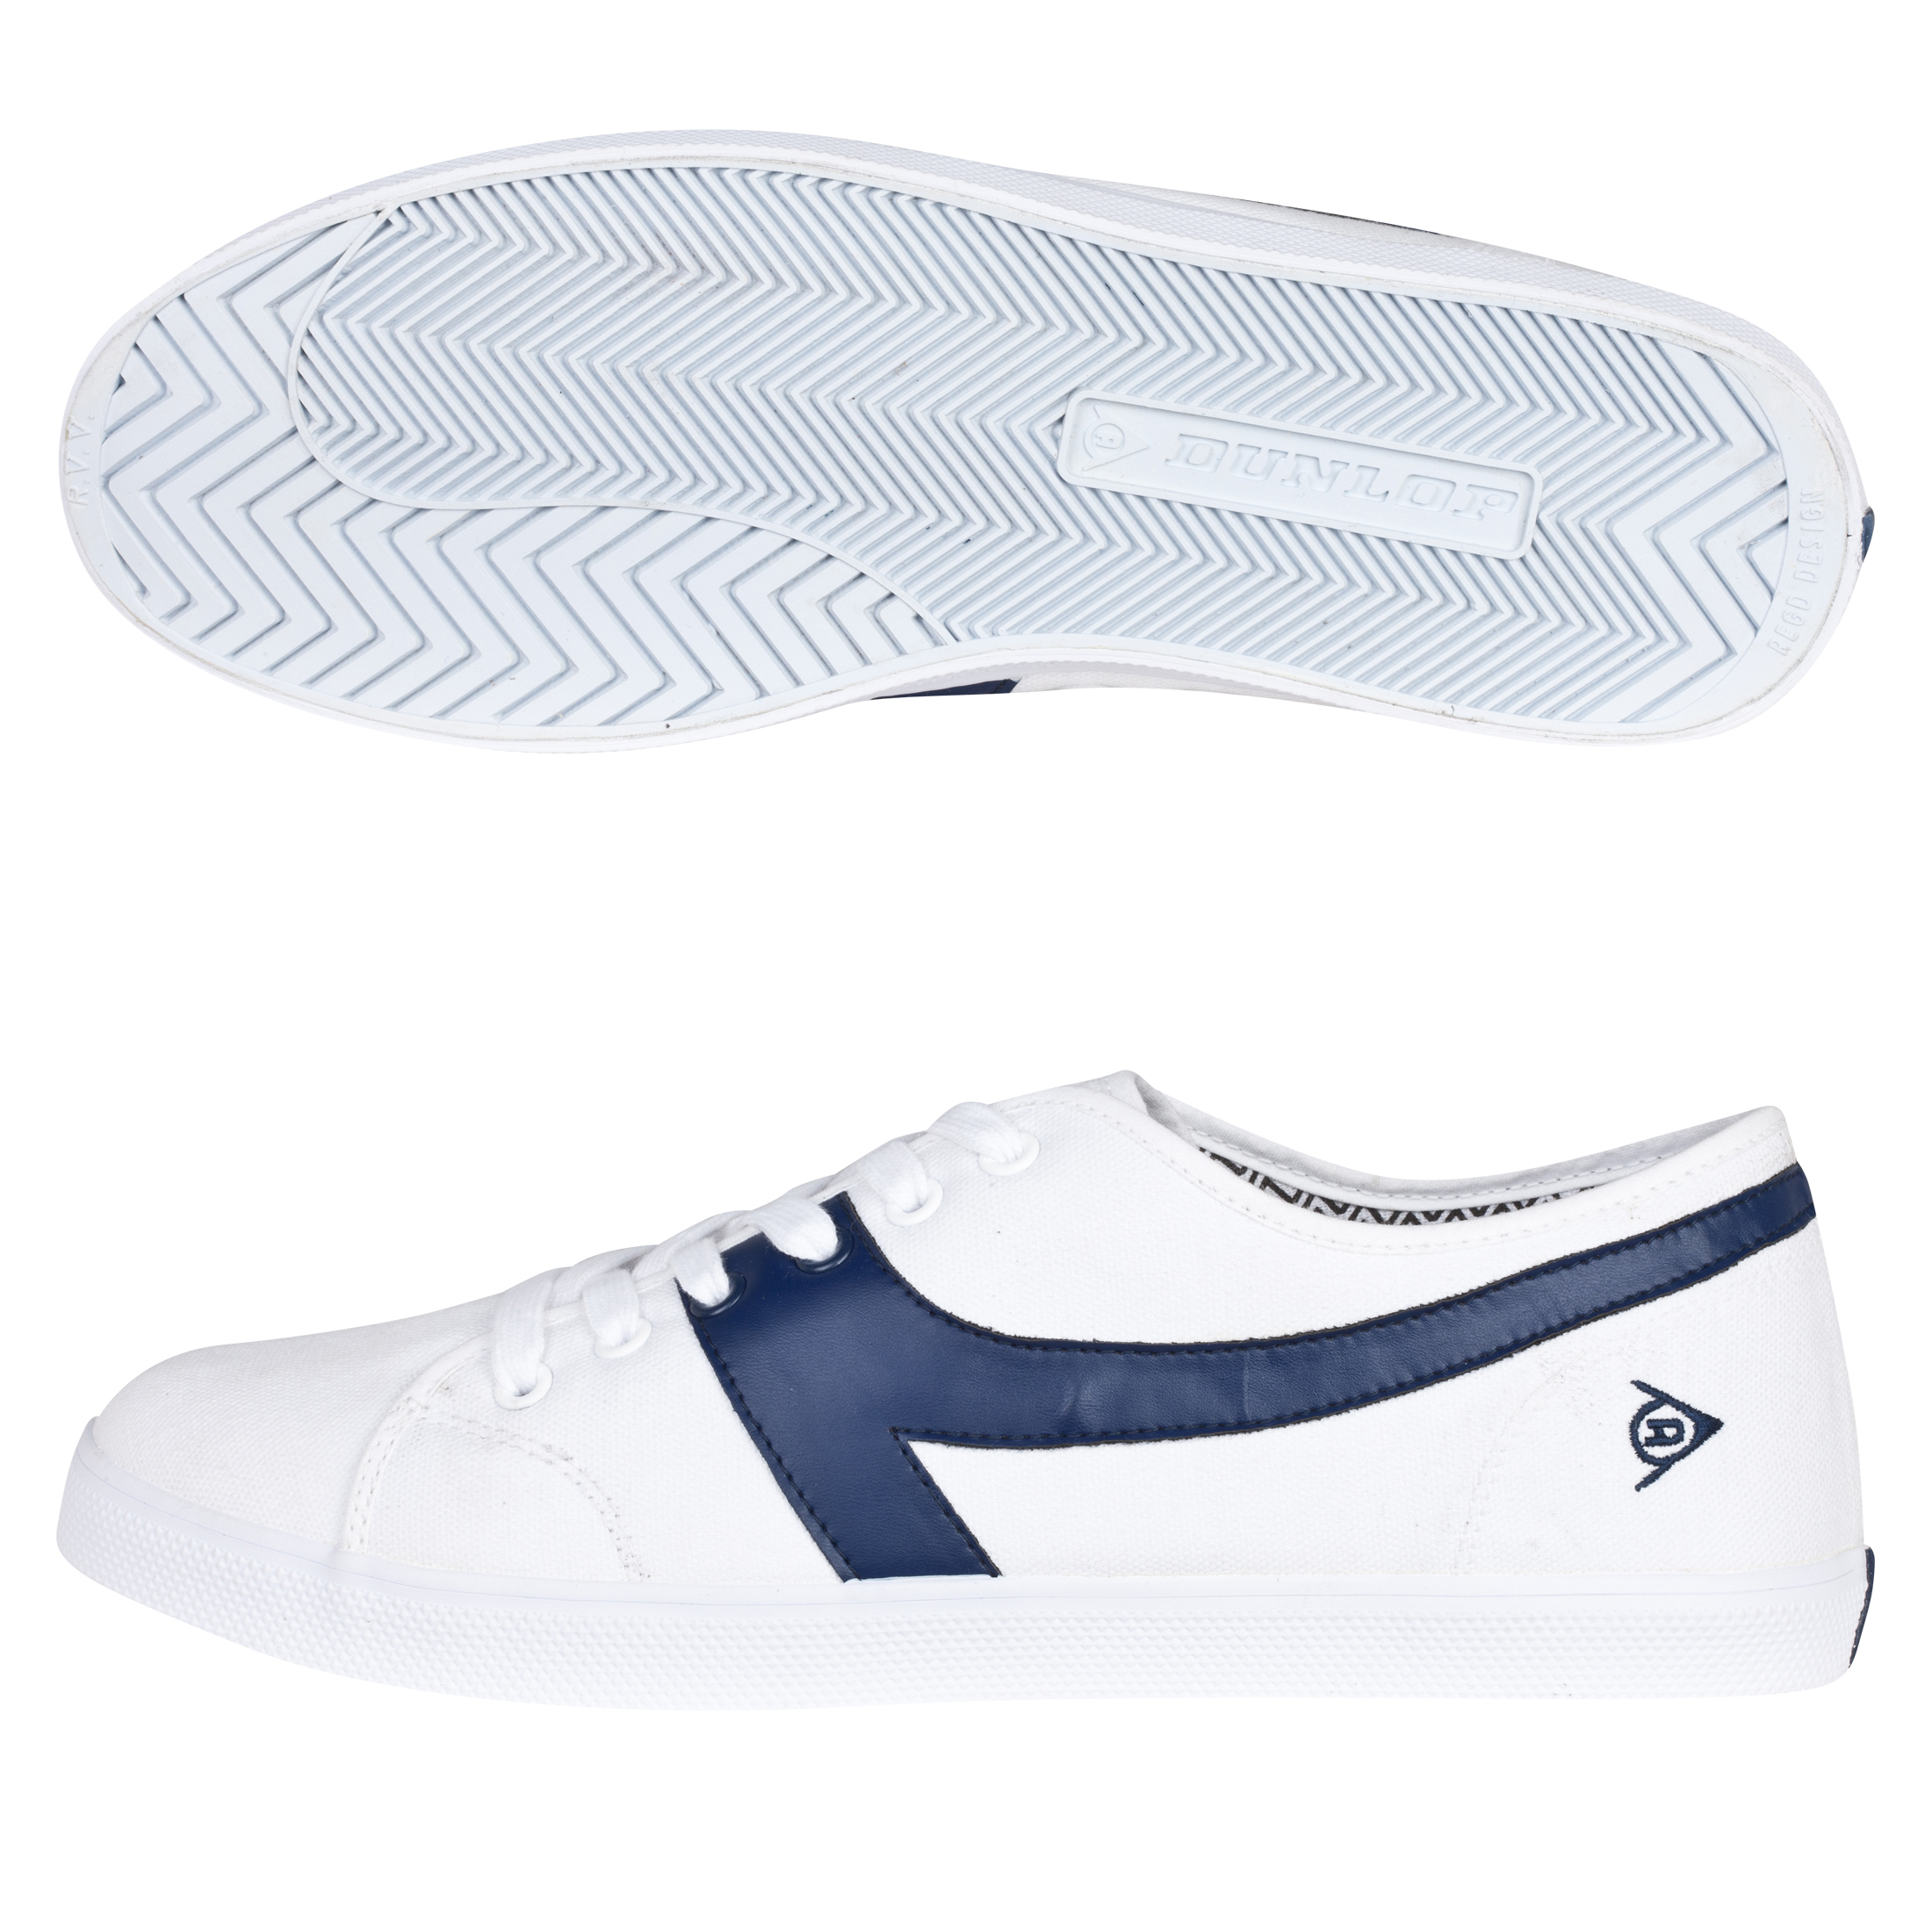 Dunlop 1987 Chevron Trainers - White/Navy